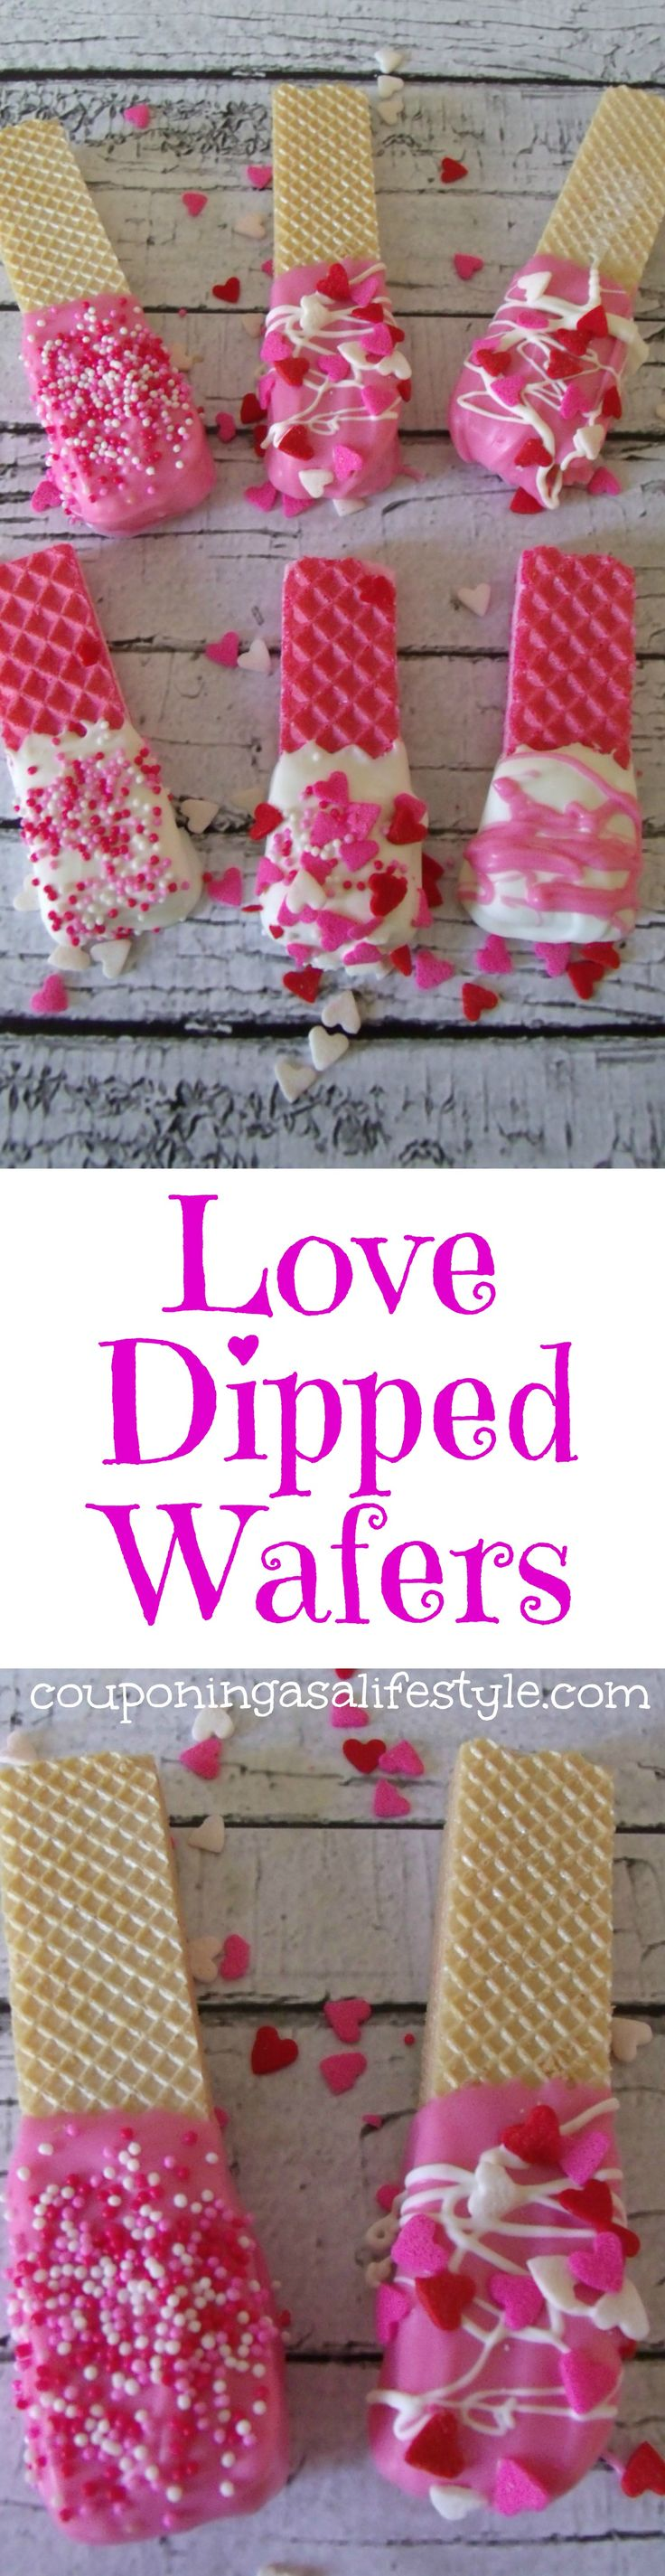 Love Dipped Wafers scream LOVE!  Pin for later!